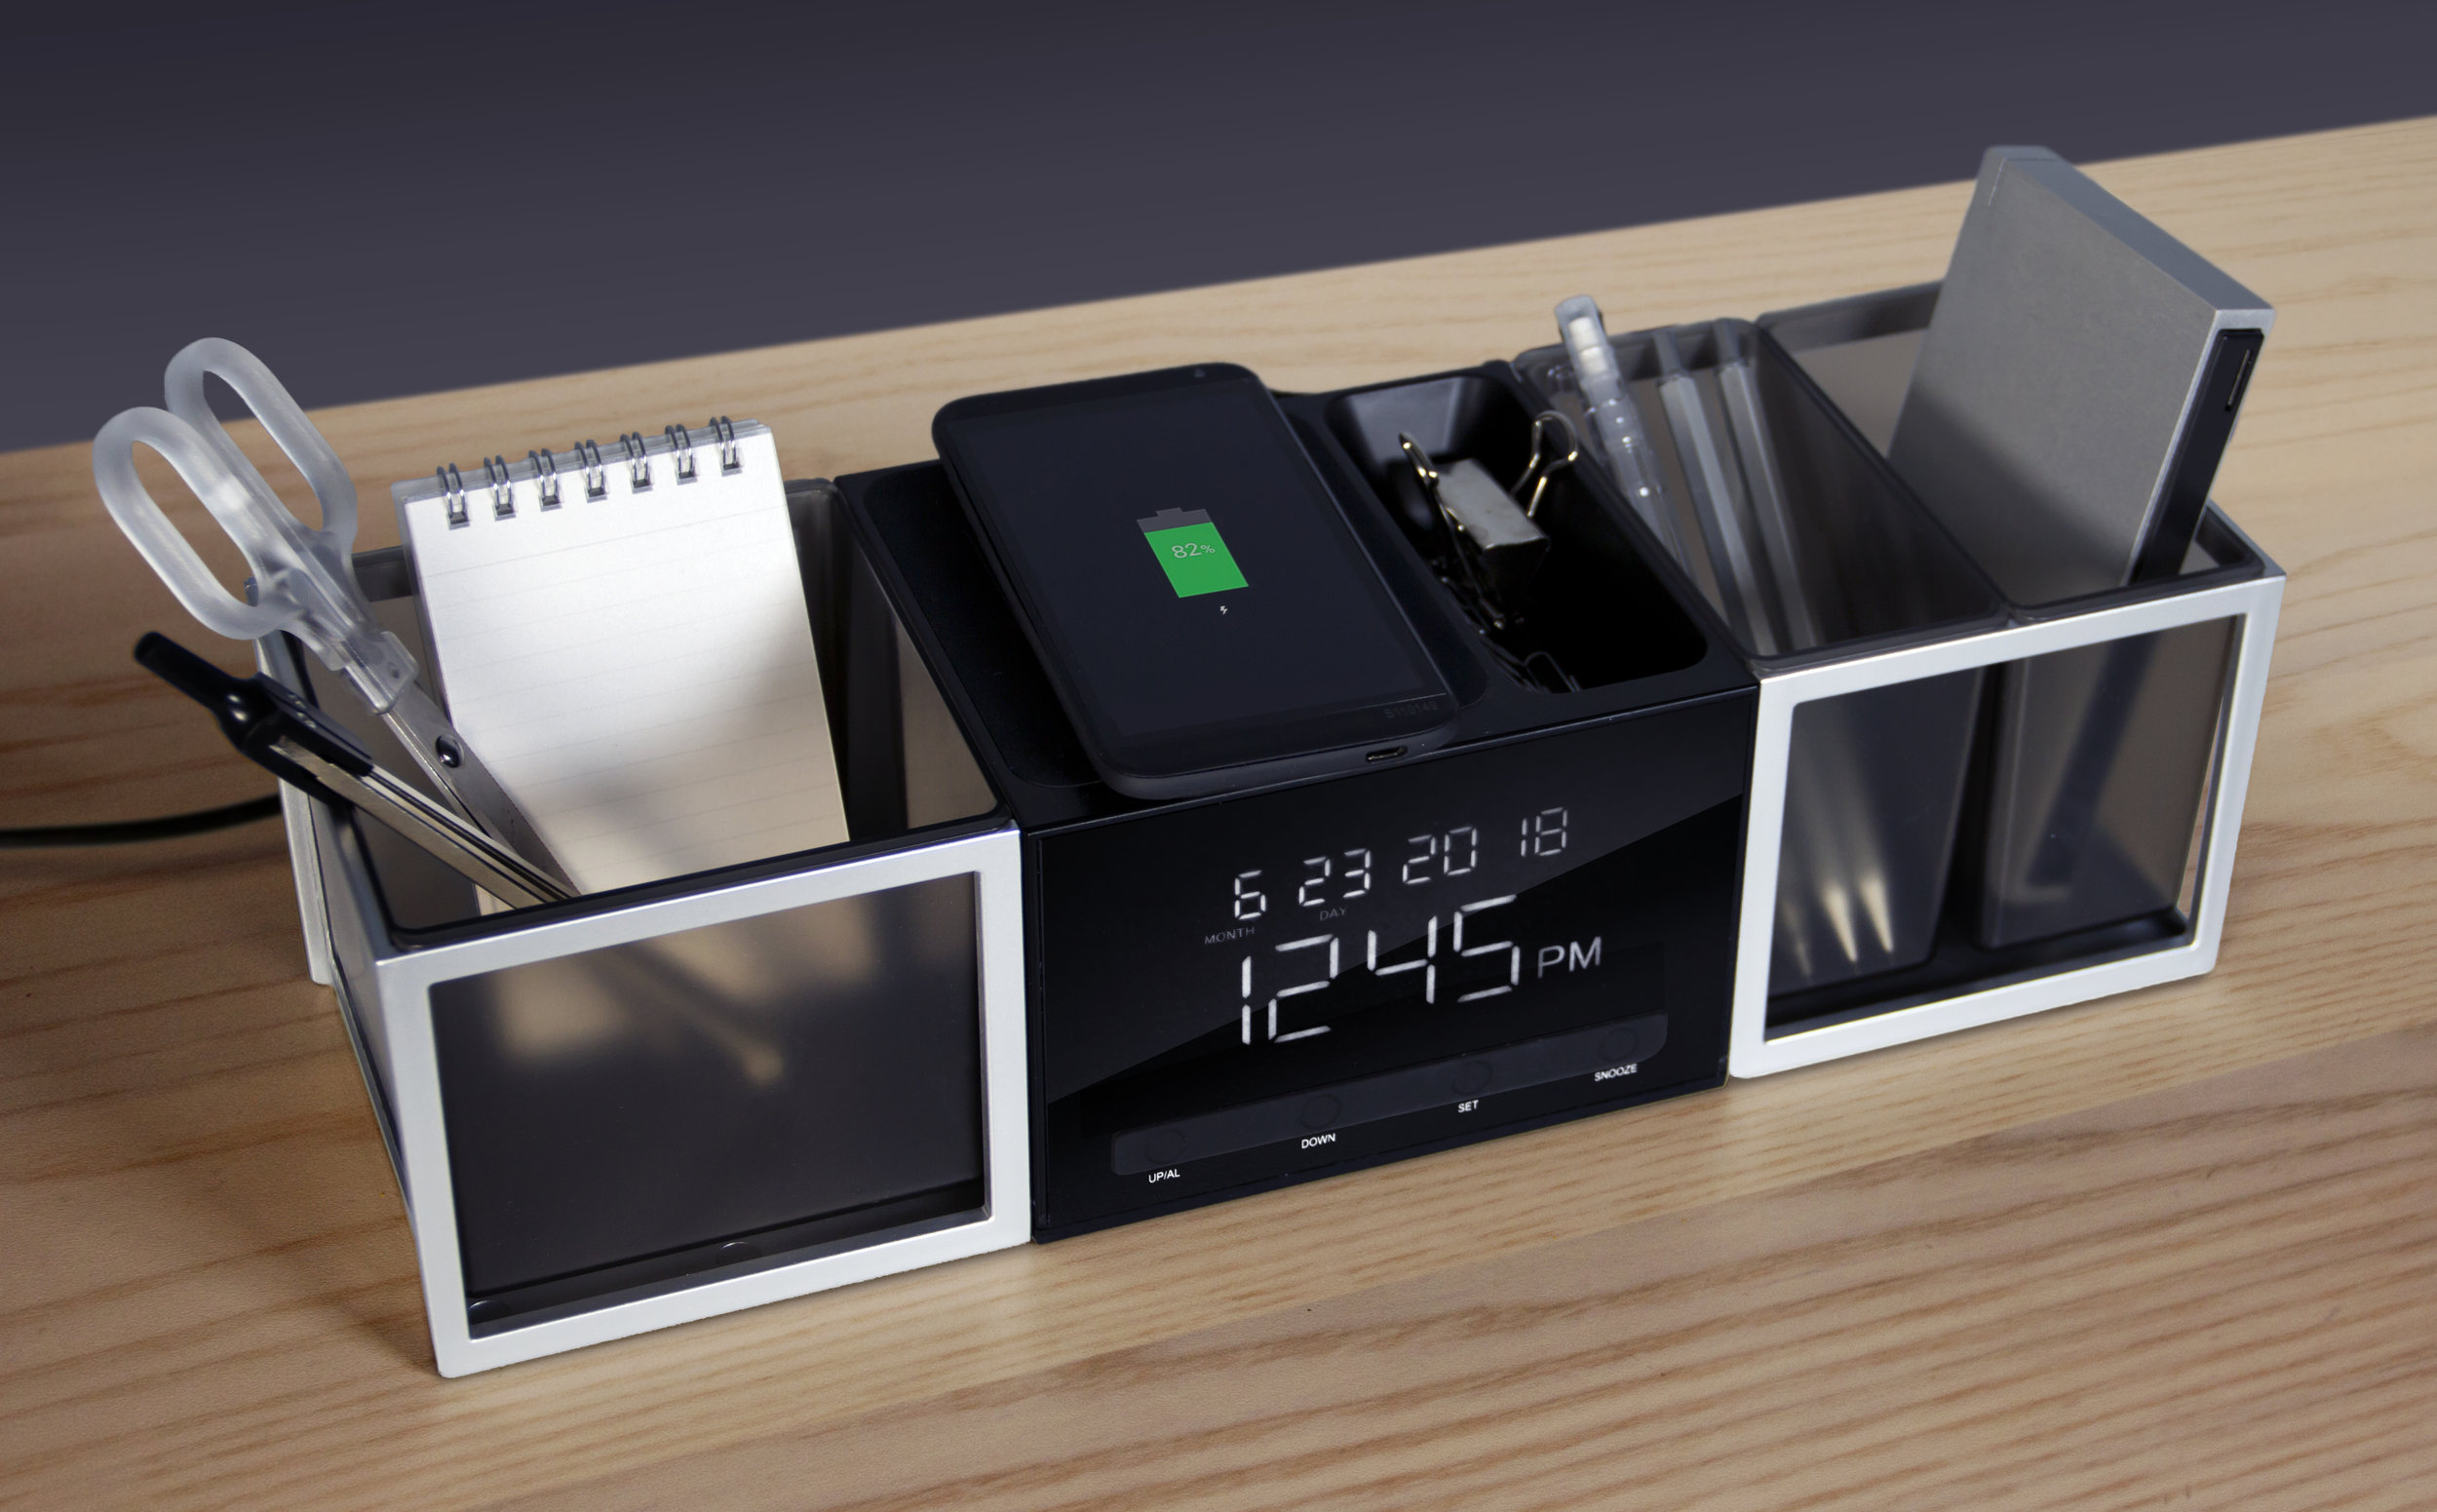 ExecConnect desktop organizer - June 2018   Exec Connect incorporates a set of USB connectors and also a wireless charging pad, combined with a digital alarm clock/calendar and a number of interchangeable storage caddies. The linear design of the unit takes inspiration form mid-century architecture and the combined use of solid forms, framing, and transparency to create a sense of lightness and visual focus.